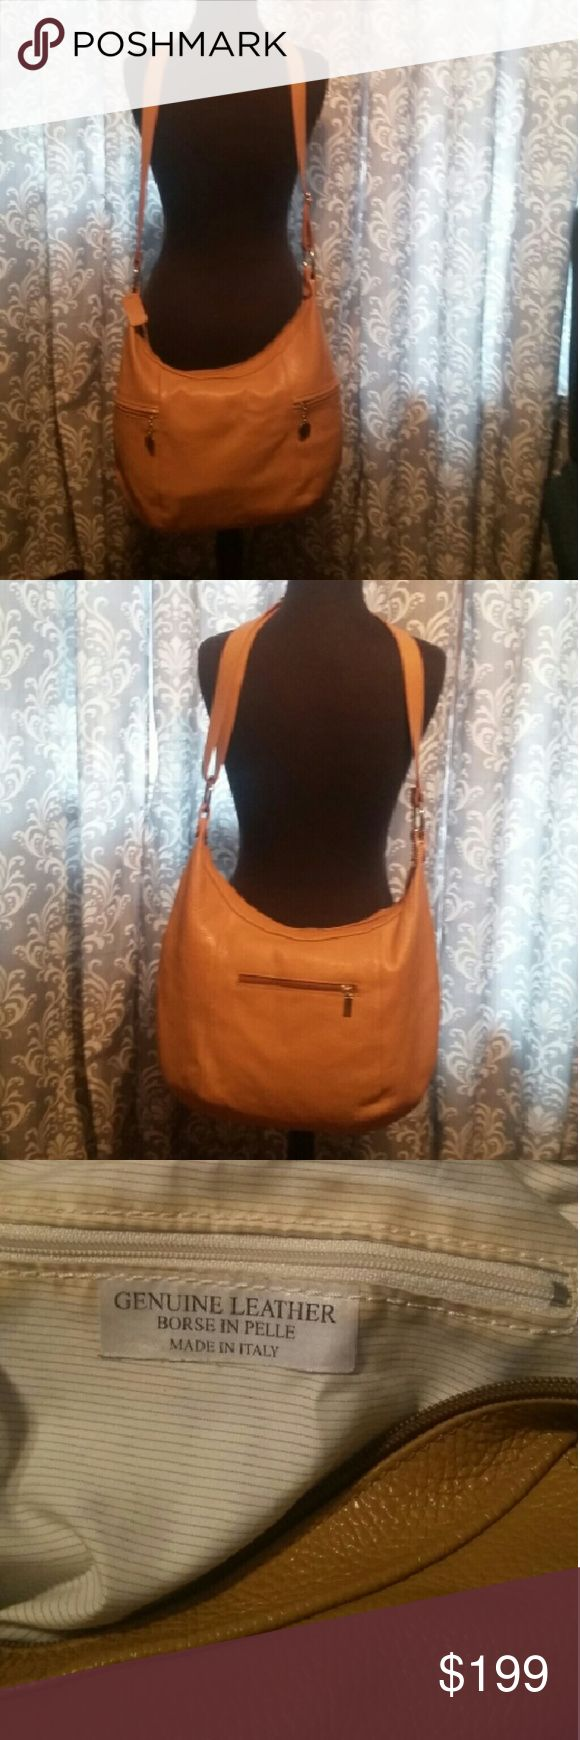 Borse in Pelle Leather Purse Borse in Pelle leather hobo purse. This bag is a camel color and it is beautiful. The leather on it is so soft, no scratches just 2  very faint pen marks.  The strap on it is adjustable. Borse in Pelle Bags Hobos